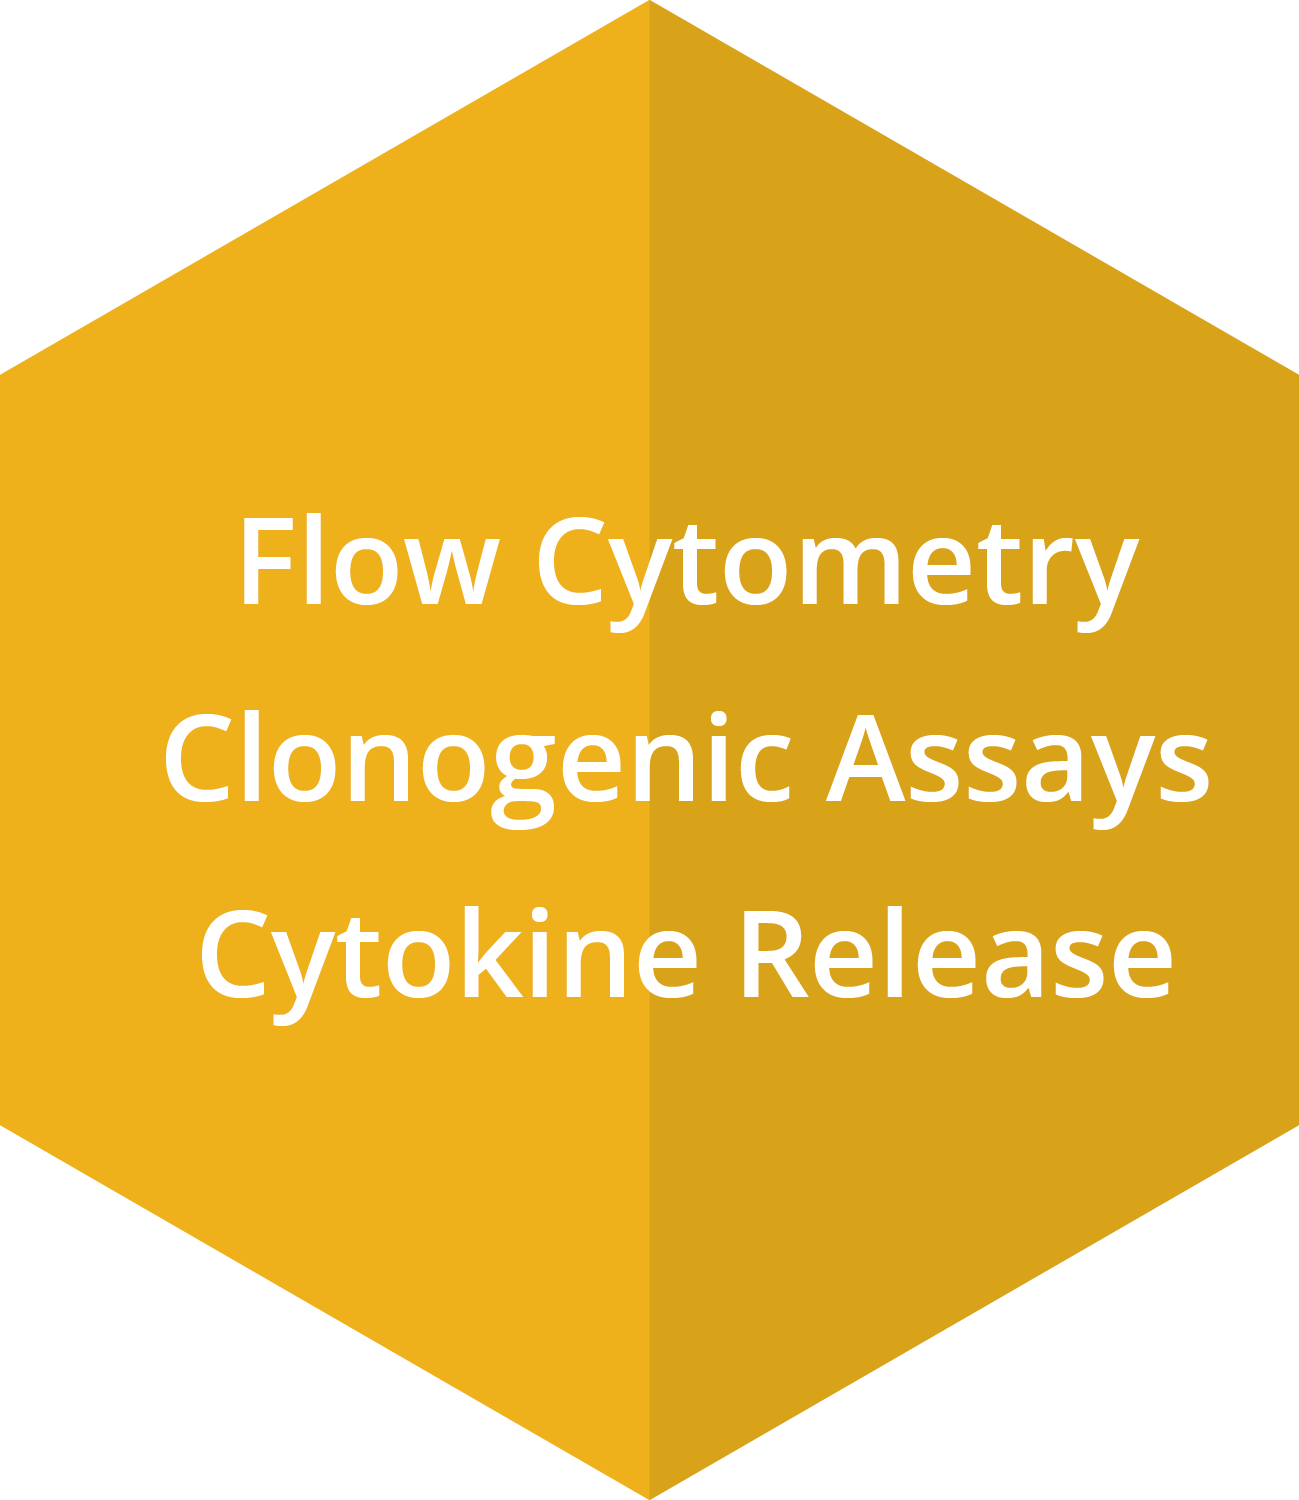 Flow Cytometry, Clonogenic Assays, Cytokine Release